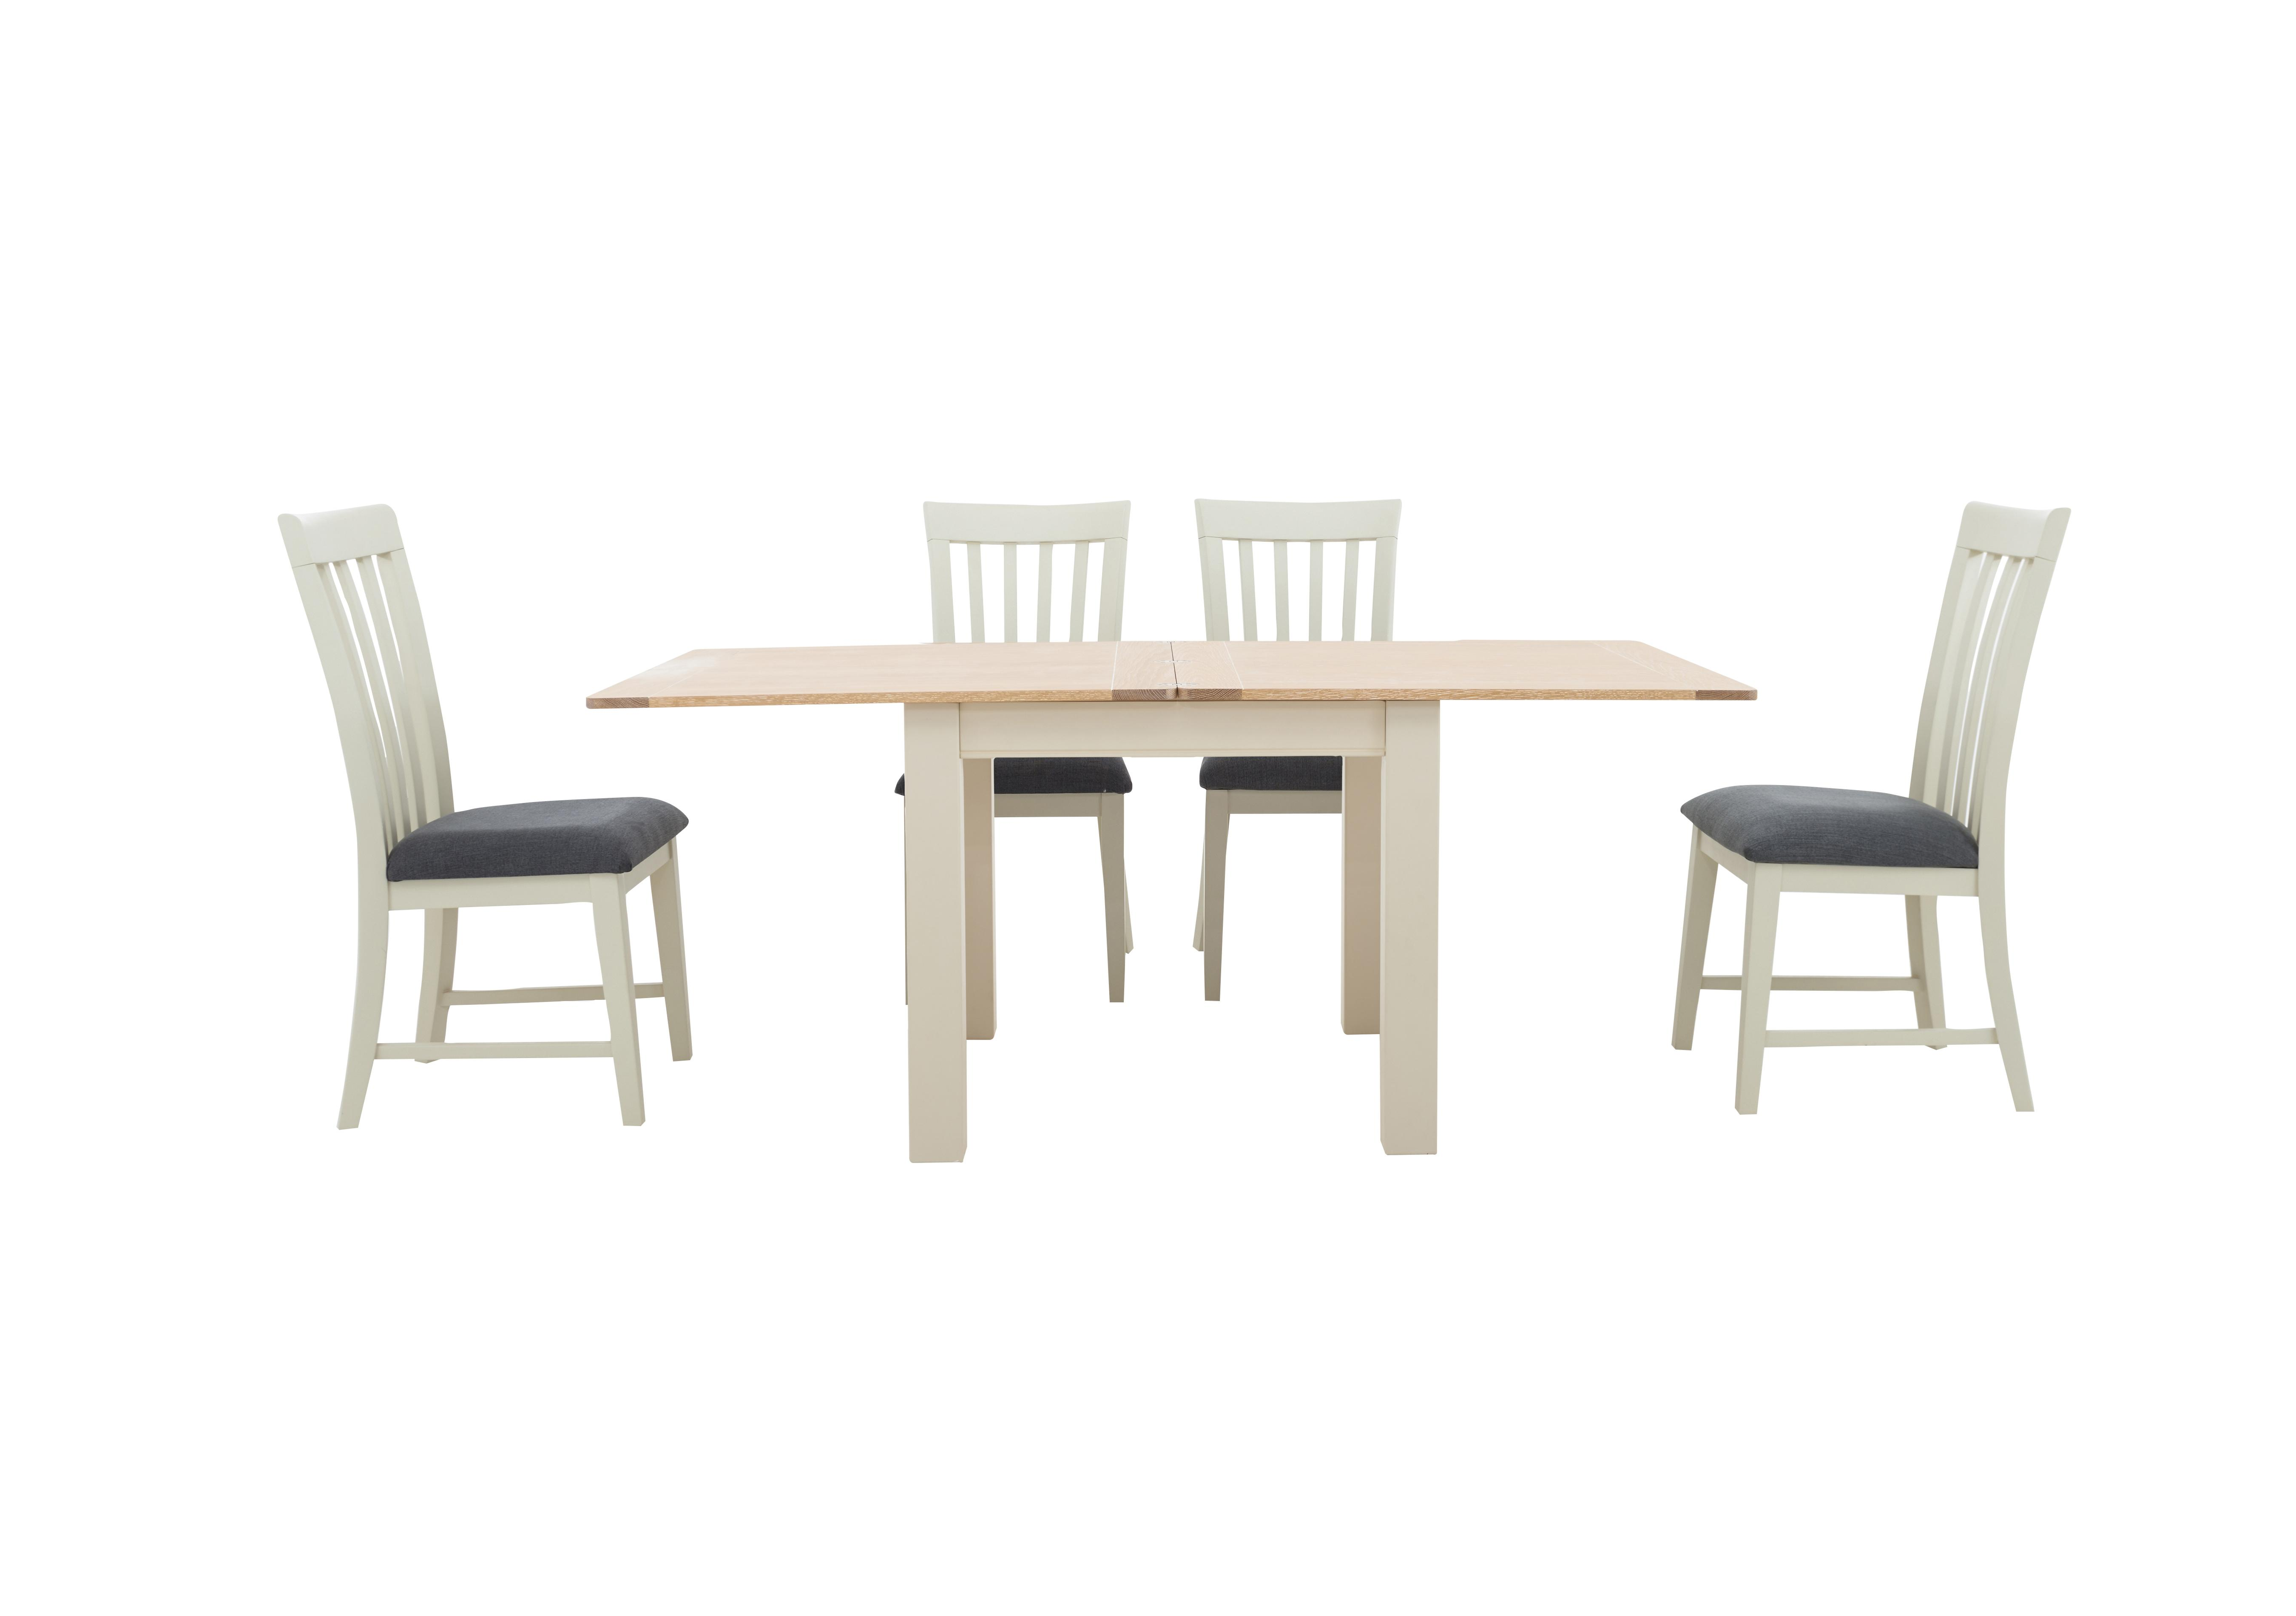 Picture of: Angeles Flip Top Extending Dining Table And 4 Wooden Dining Chairs Furnitureland Furniture Village